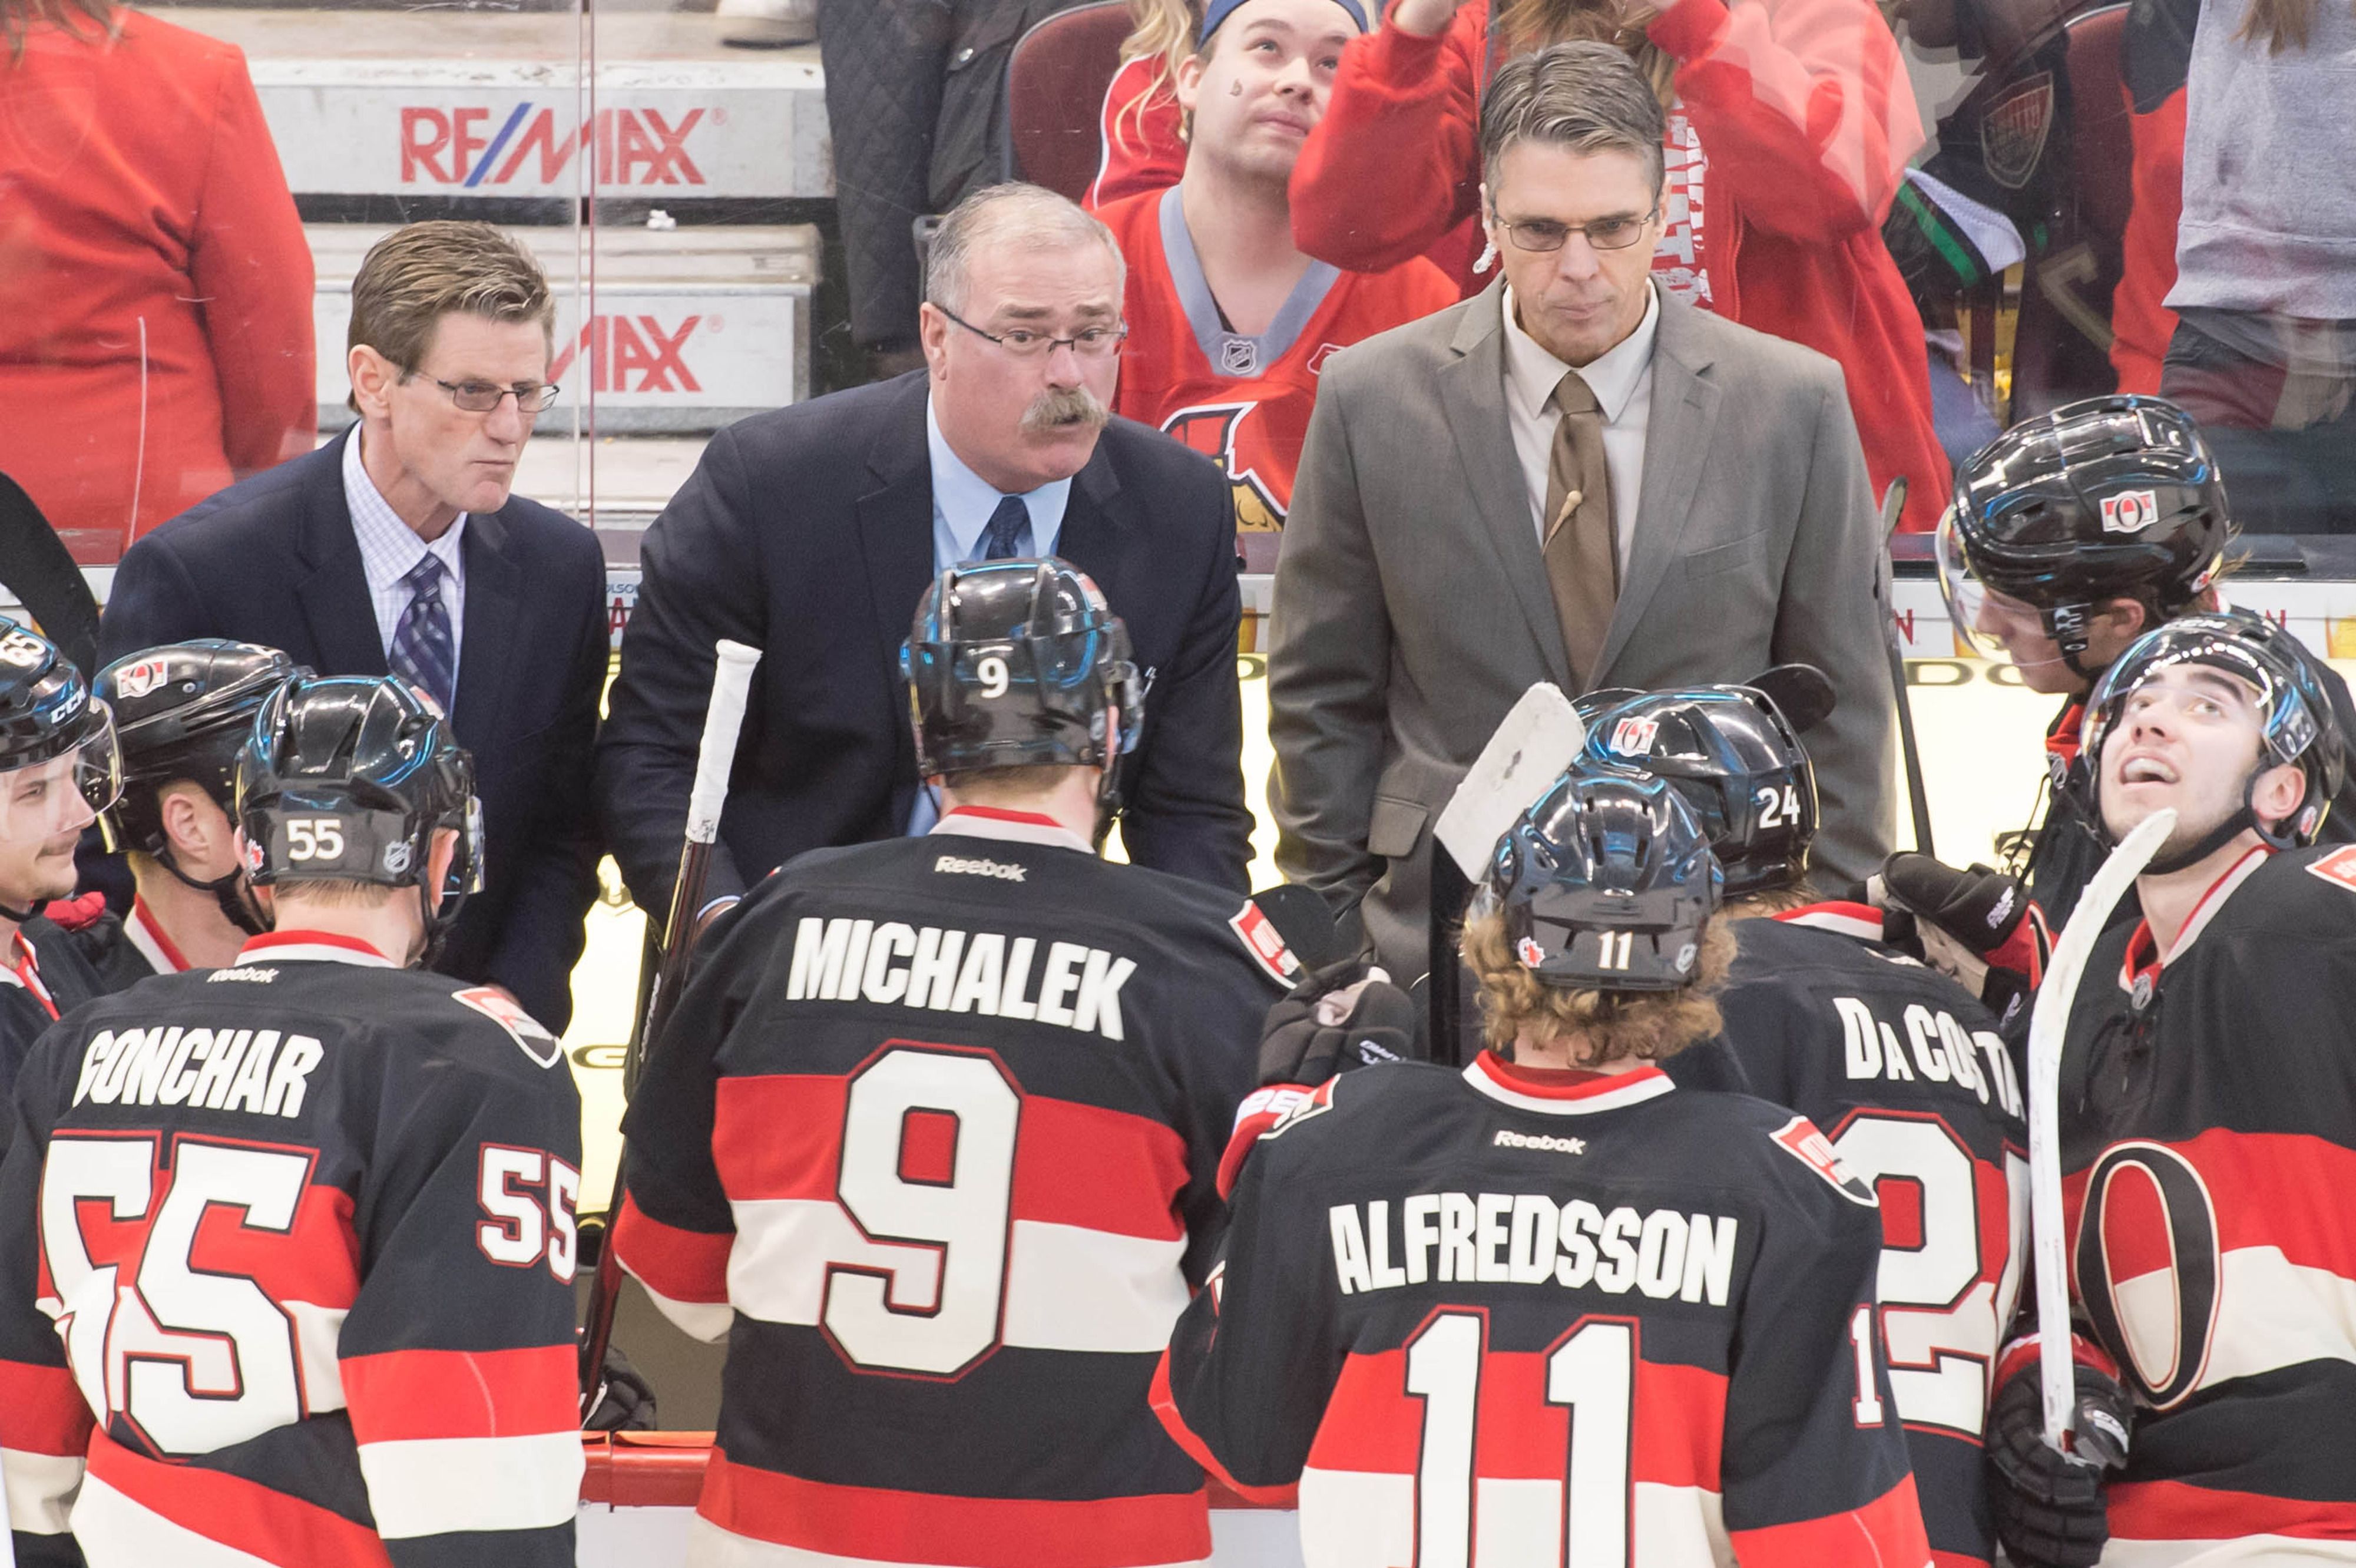 When Paul MacLean talks, players listen (or at least the ones over 20).